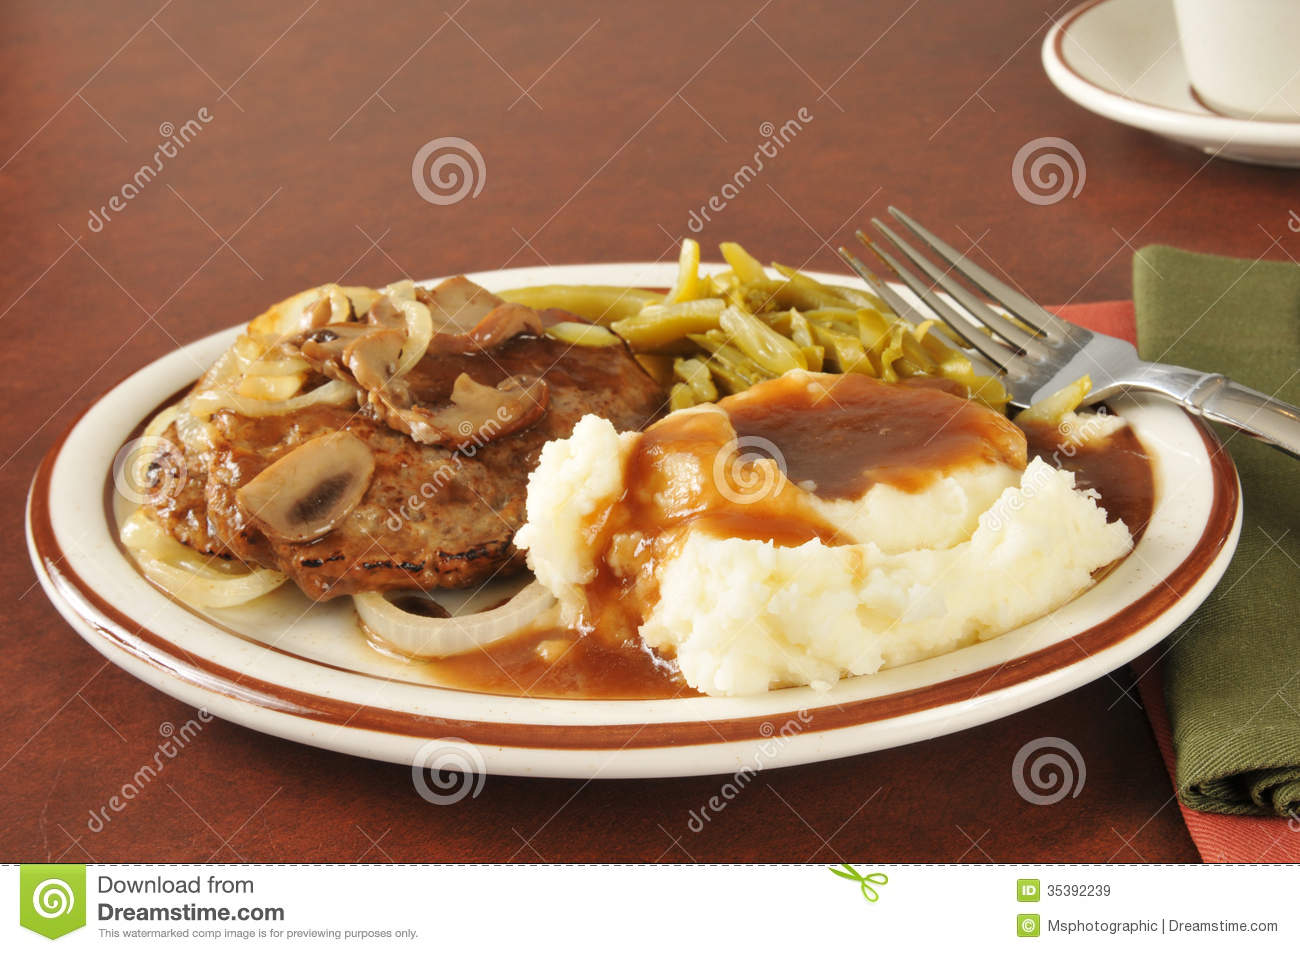 Salisbury Steak With Mashed Potatoes And Gravy Royalty